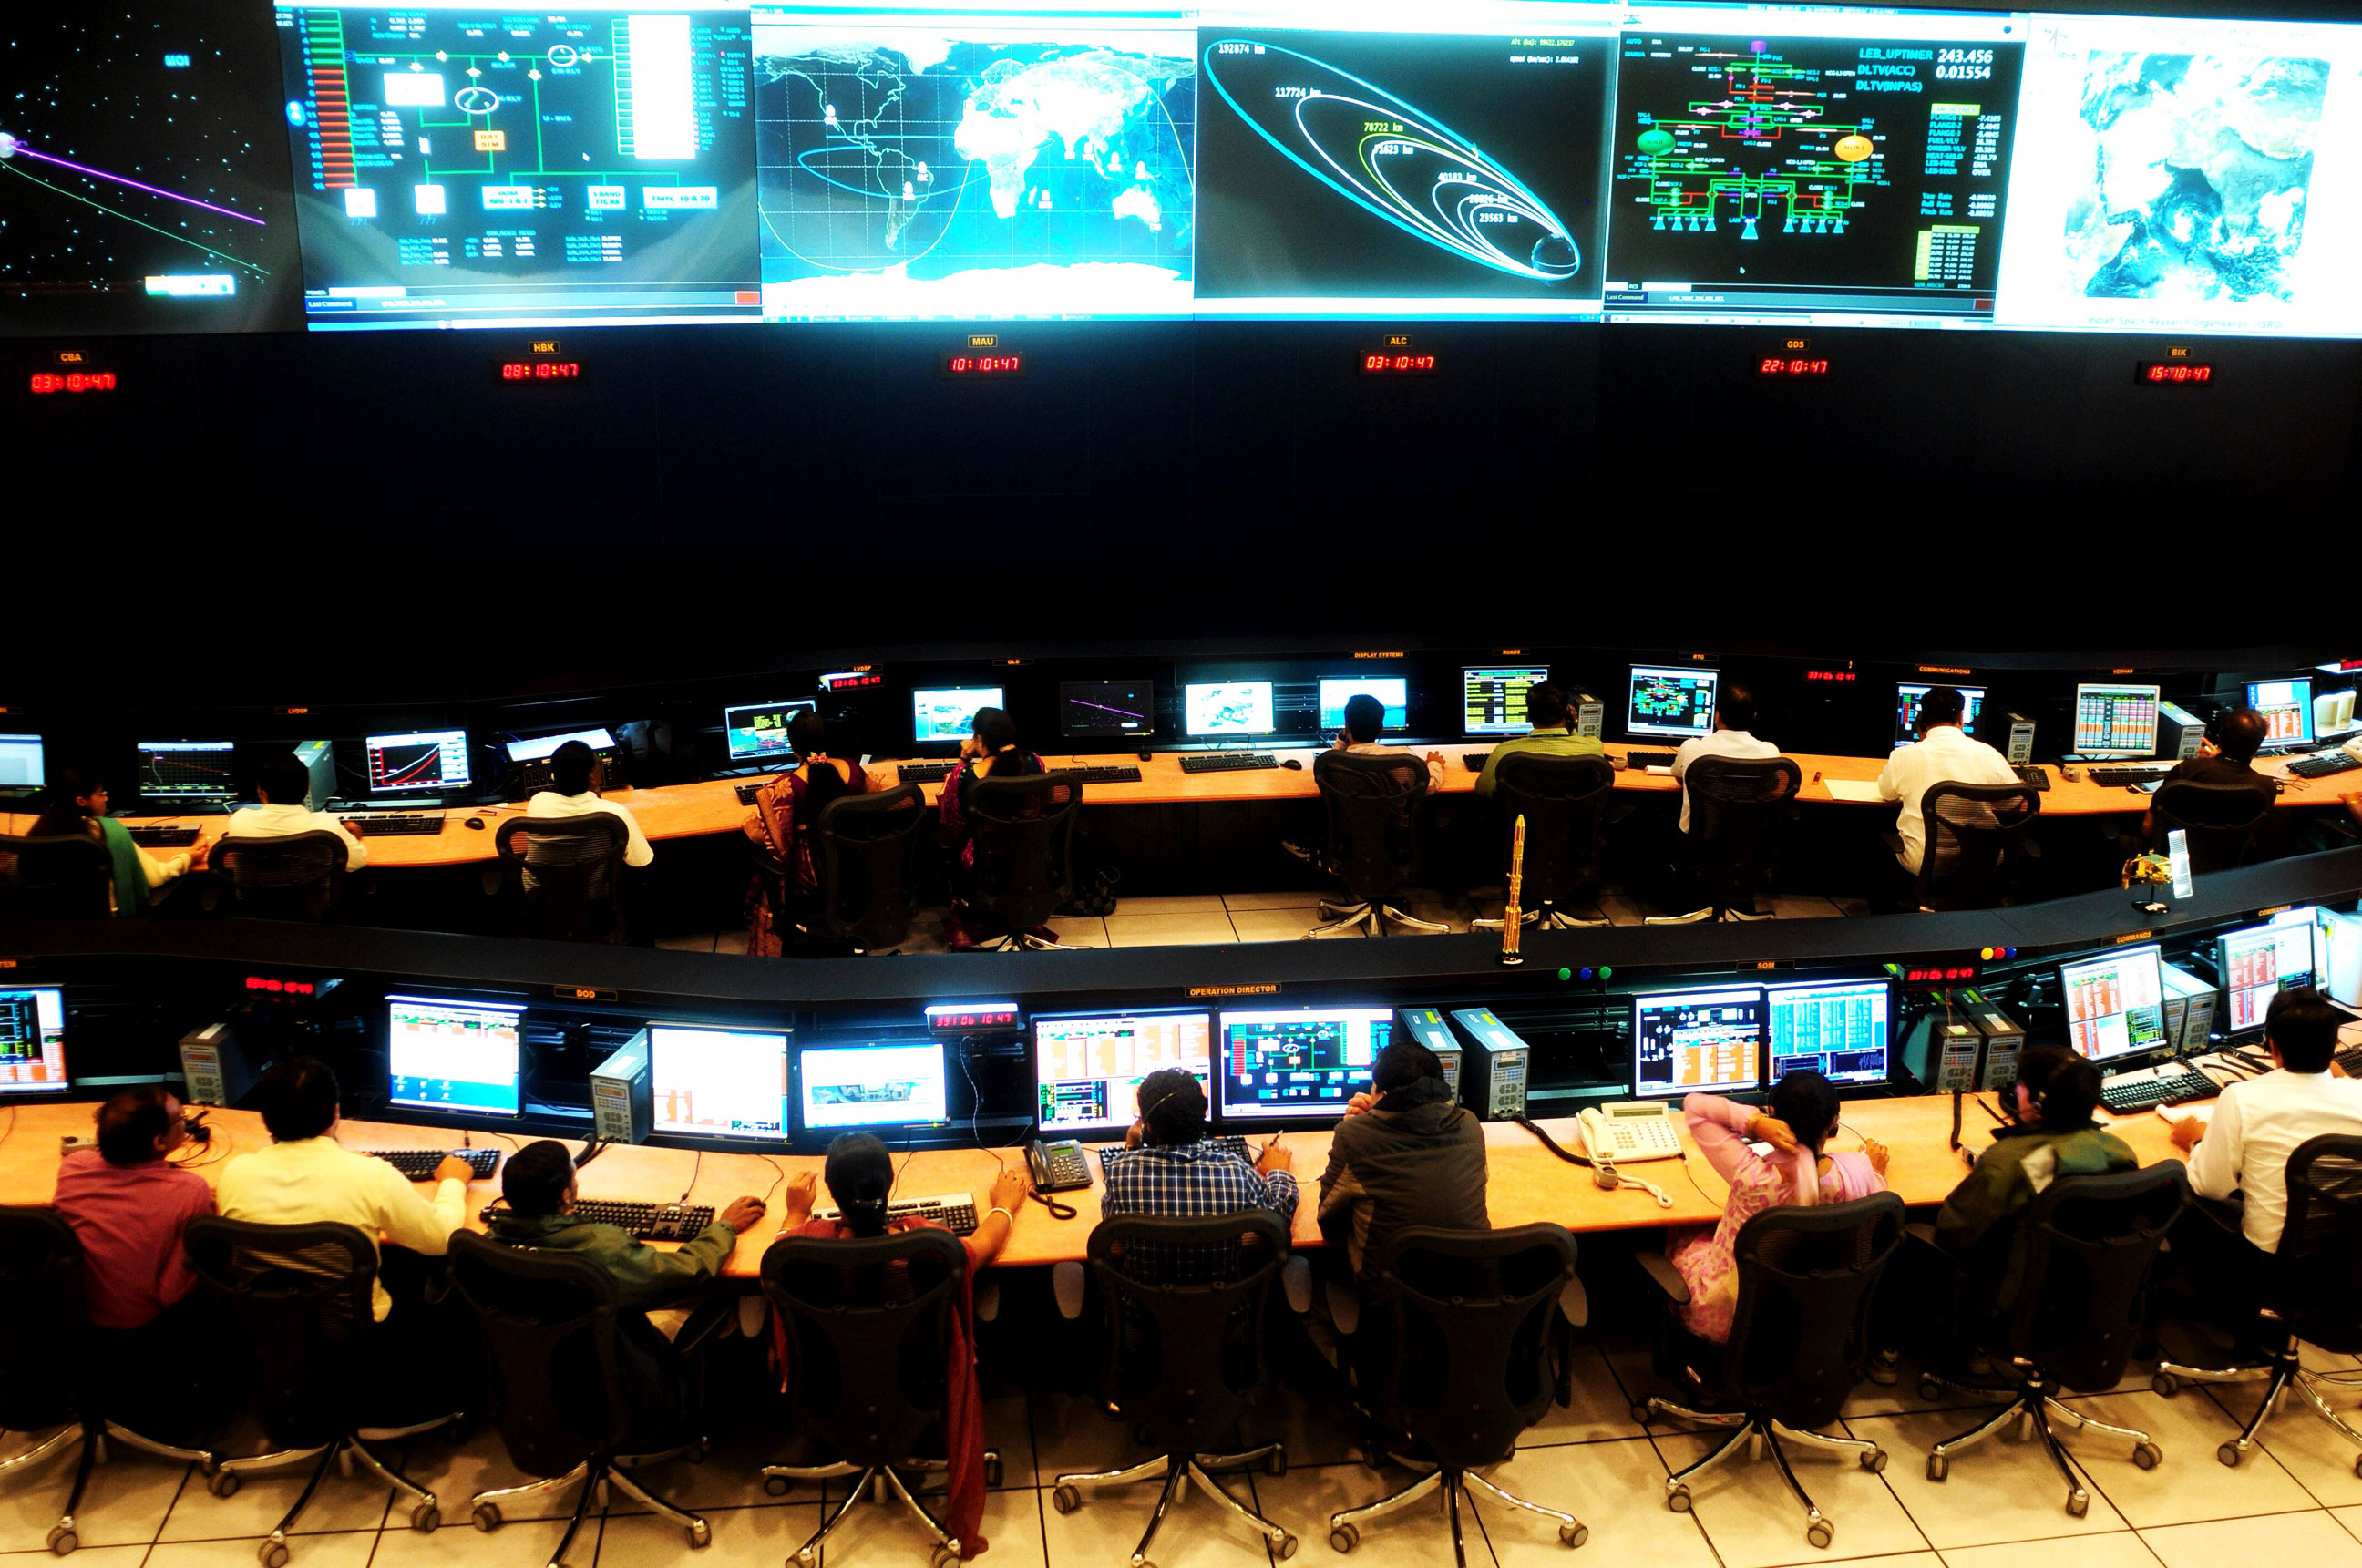 Indian scientists and engineers of the Indian Space Research Organization [ISRO] monitor the Mars Orbiter Mission [MOM] at the tracking centre, ISTRAC [Telemetry, Tracking and Command Network], at the Mars Orbiter Mission in Bangalore. [Jagadeesh Nv/EPA]